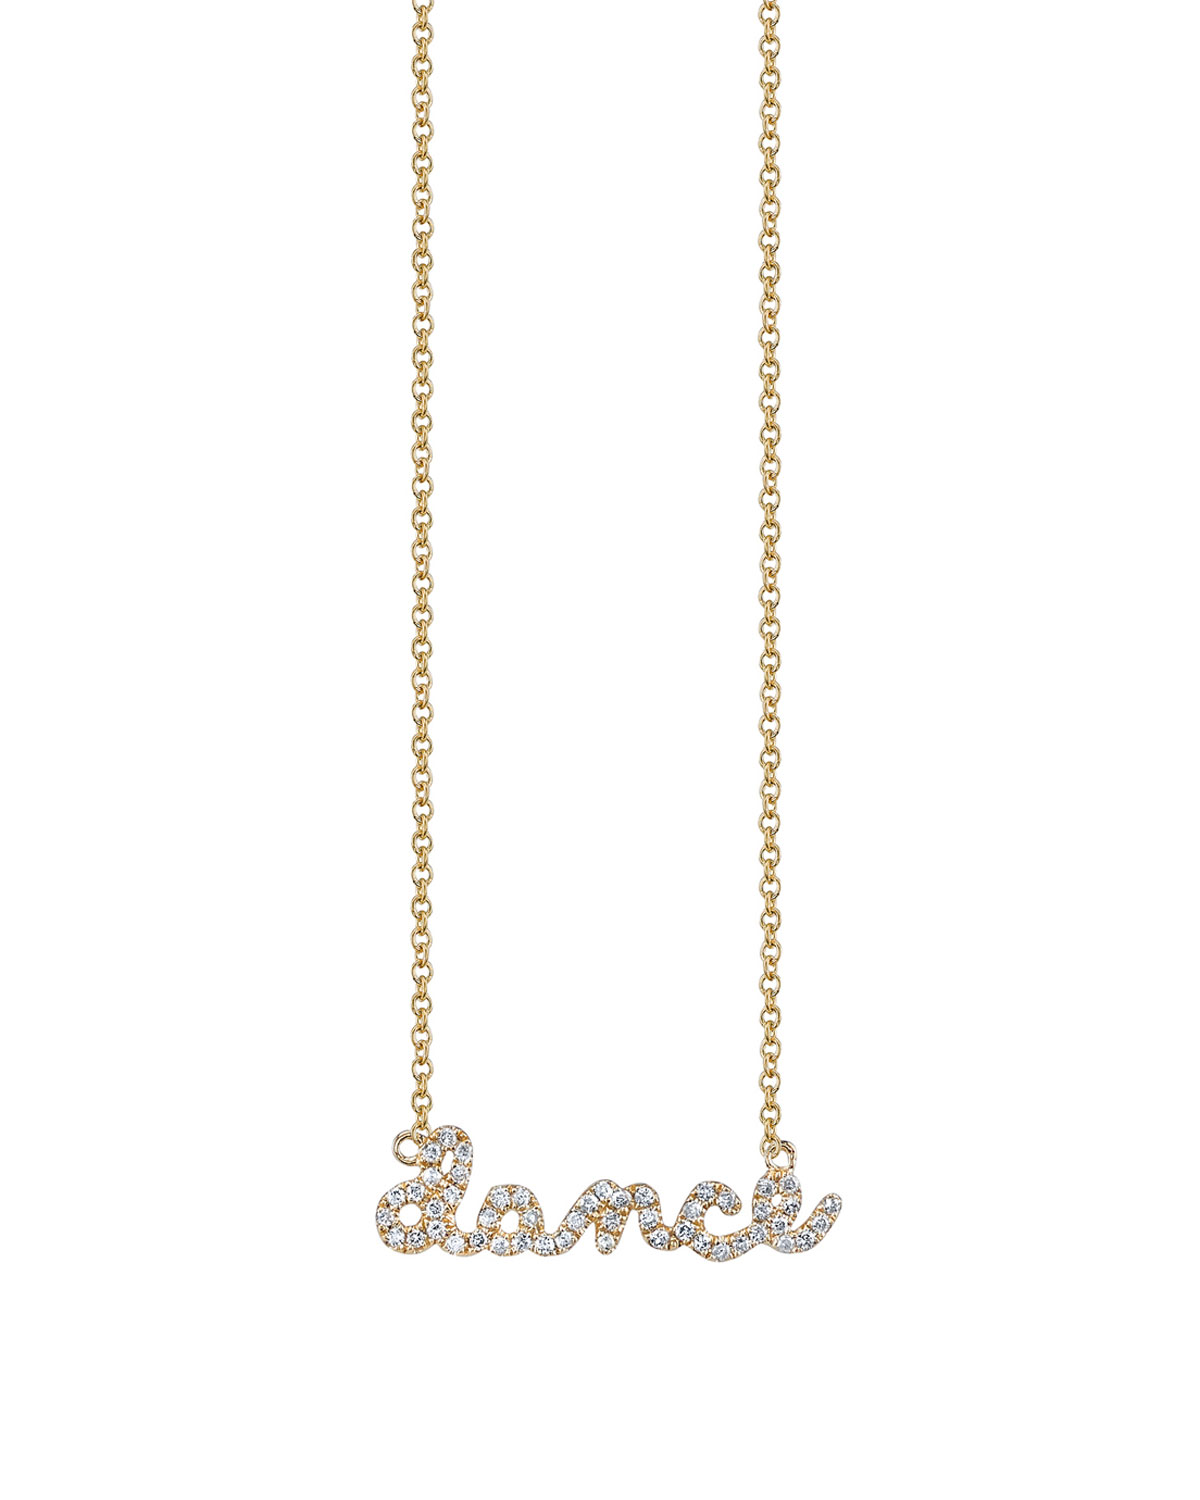 Sydney Evan  14K YELLOW GOLD DANCE SCRIPT NECKLACE, YOUTH 7-14